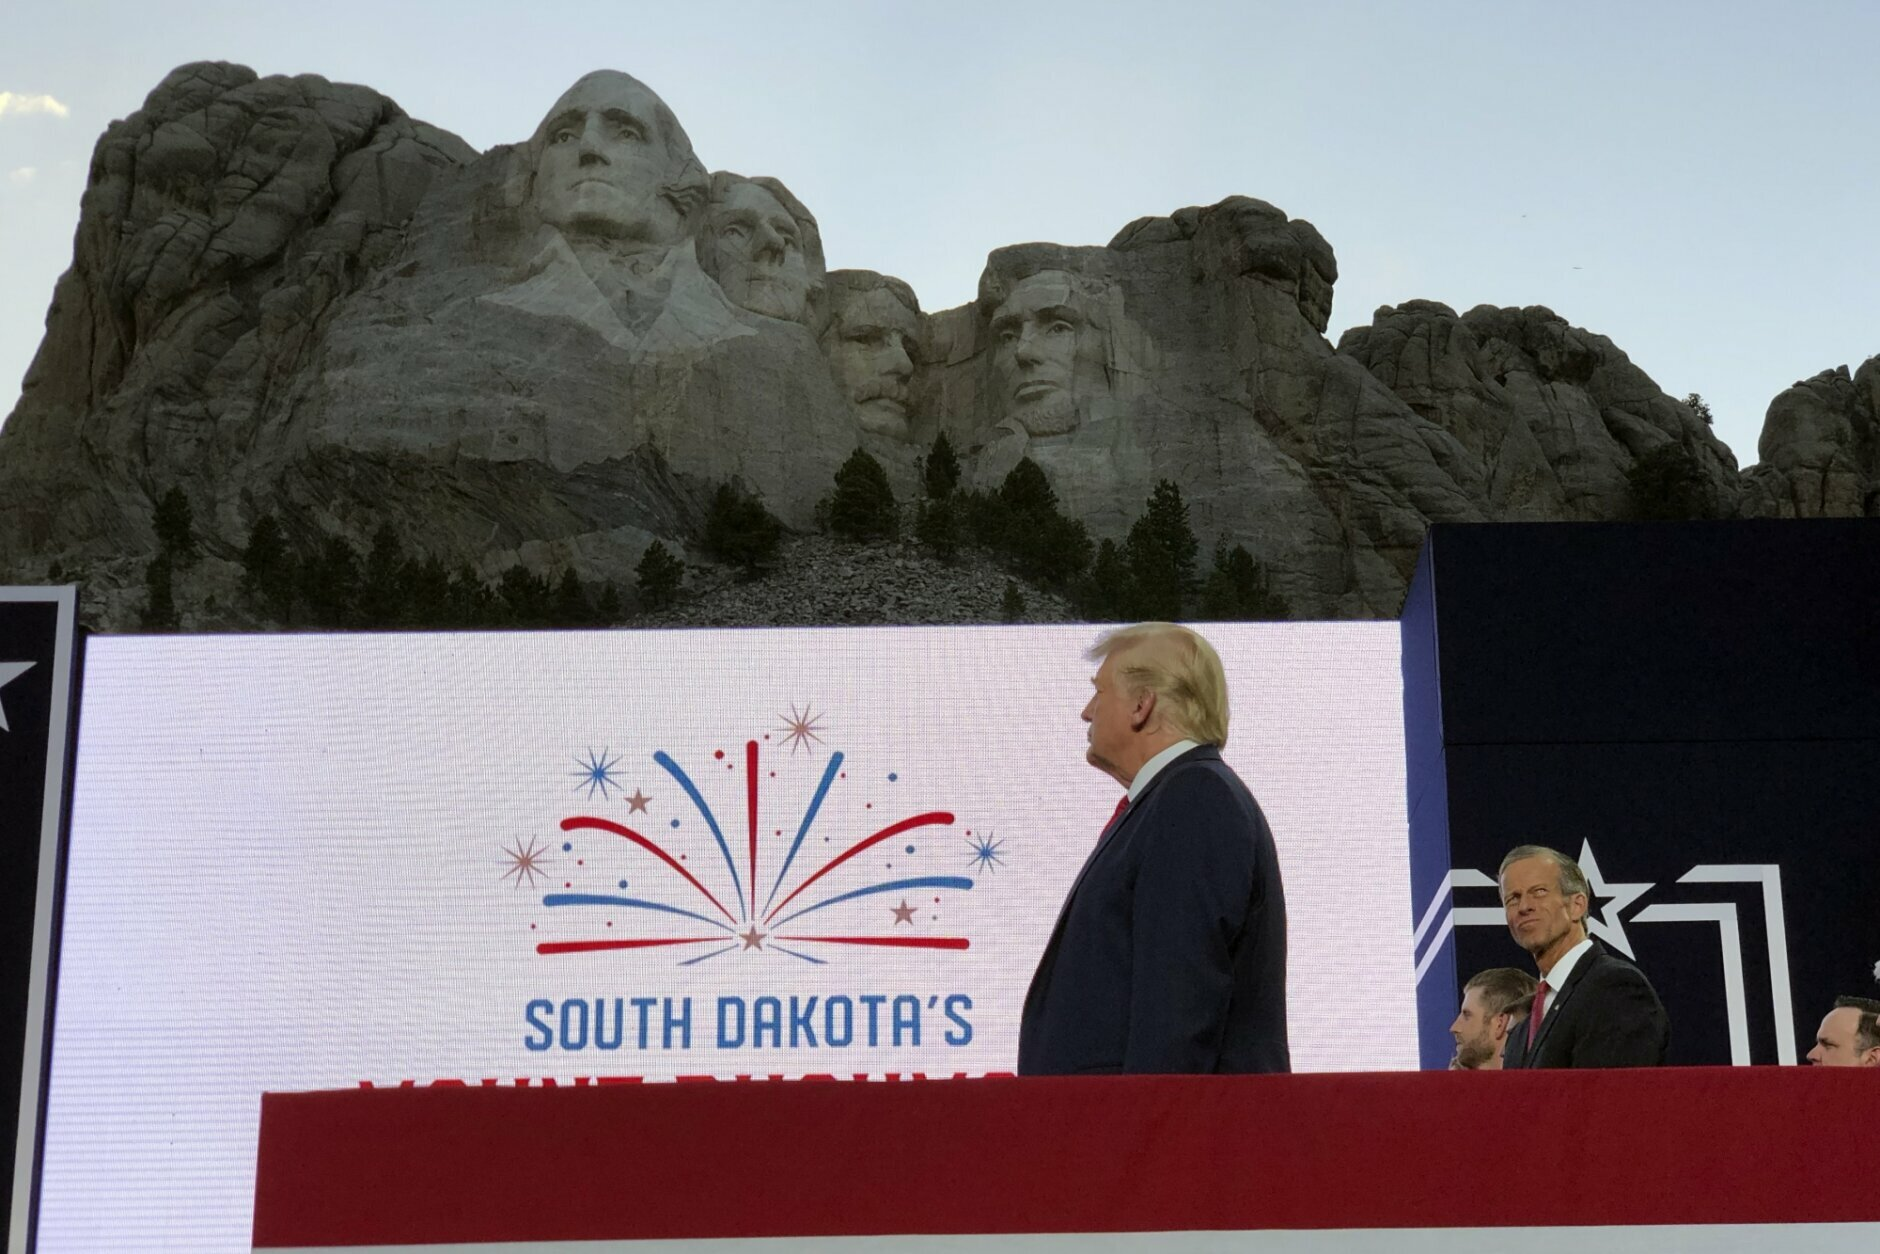 President Donald Trump stands on stage before he speaks at the Mount Rushmore National Monument Friday, July 3, 2020, in Keystone, S.D. (AP Photo/Alex Brandon)